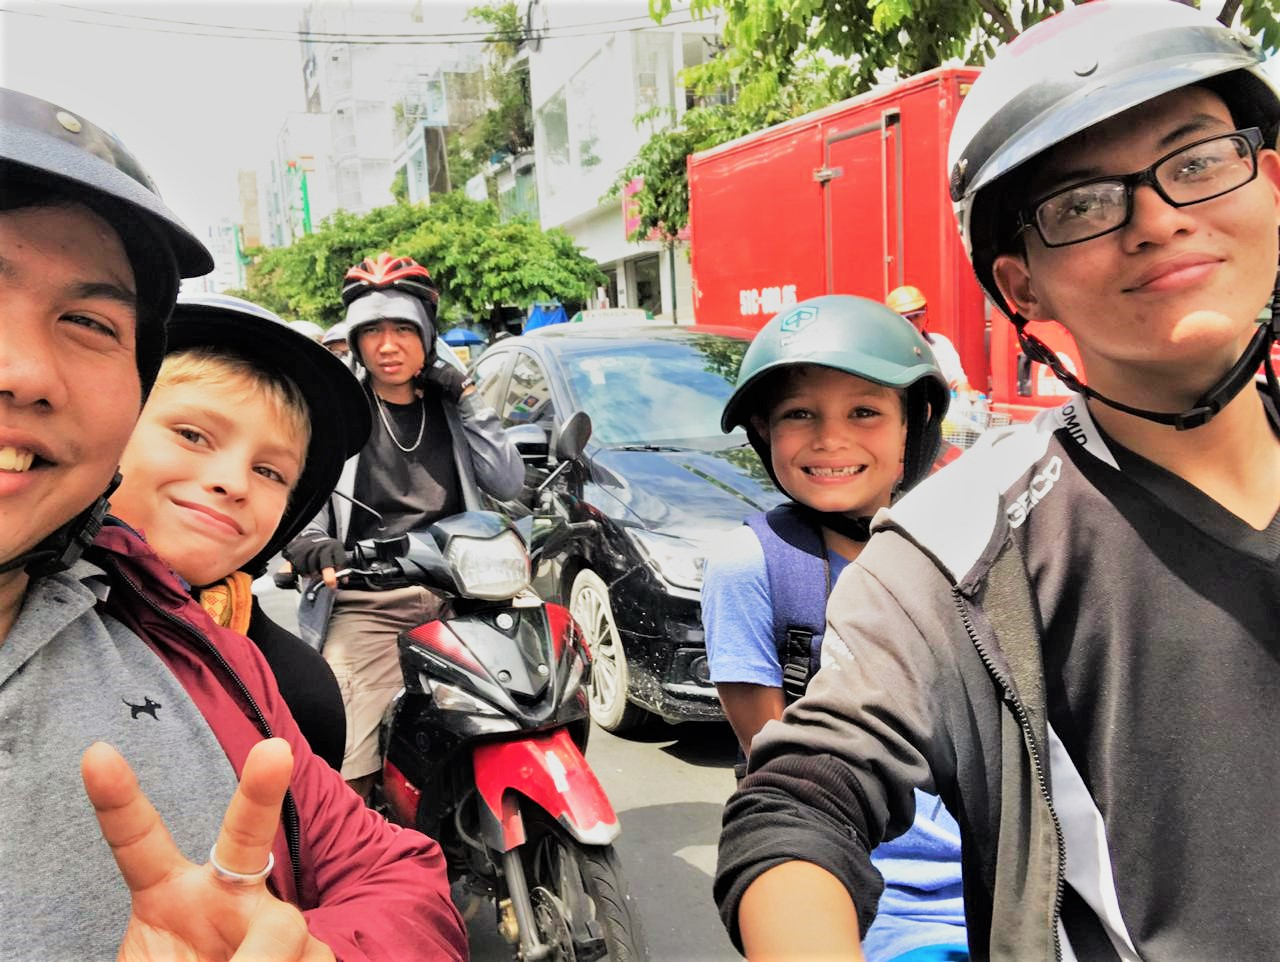 It is so exciting for children join Saigon Motorbike Tour